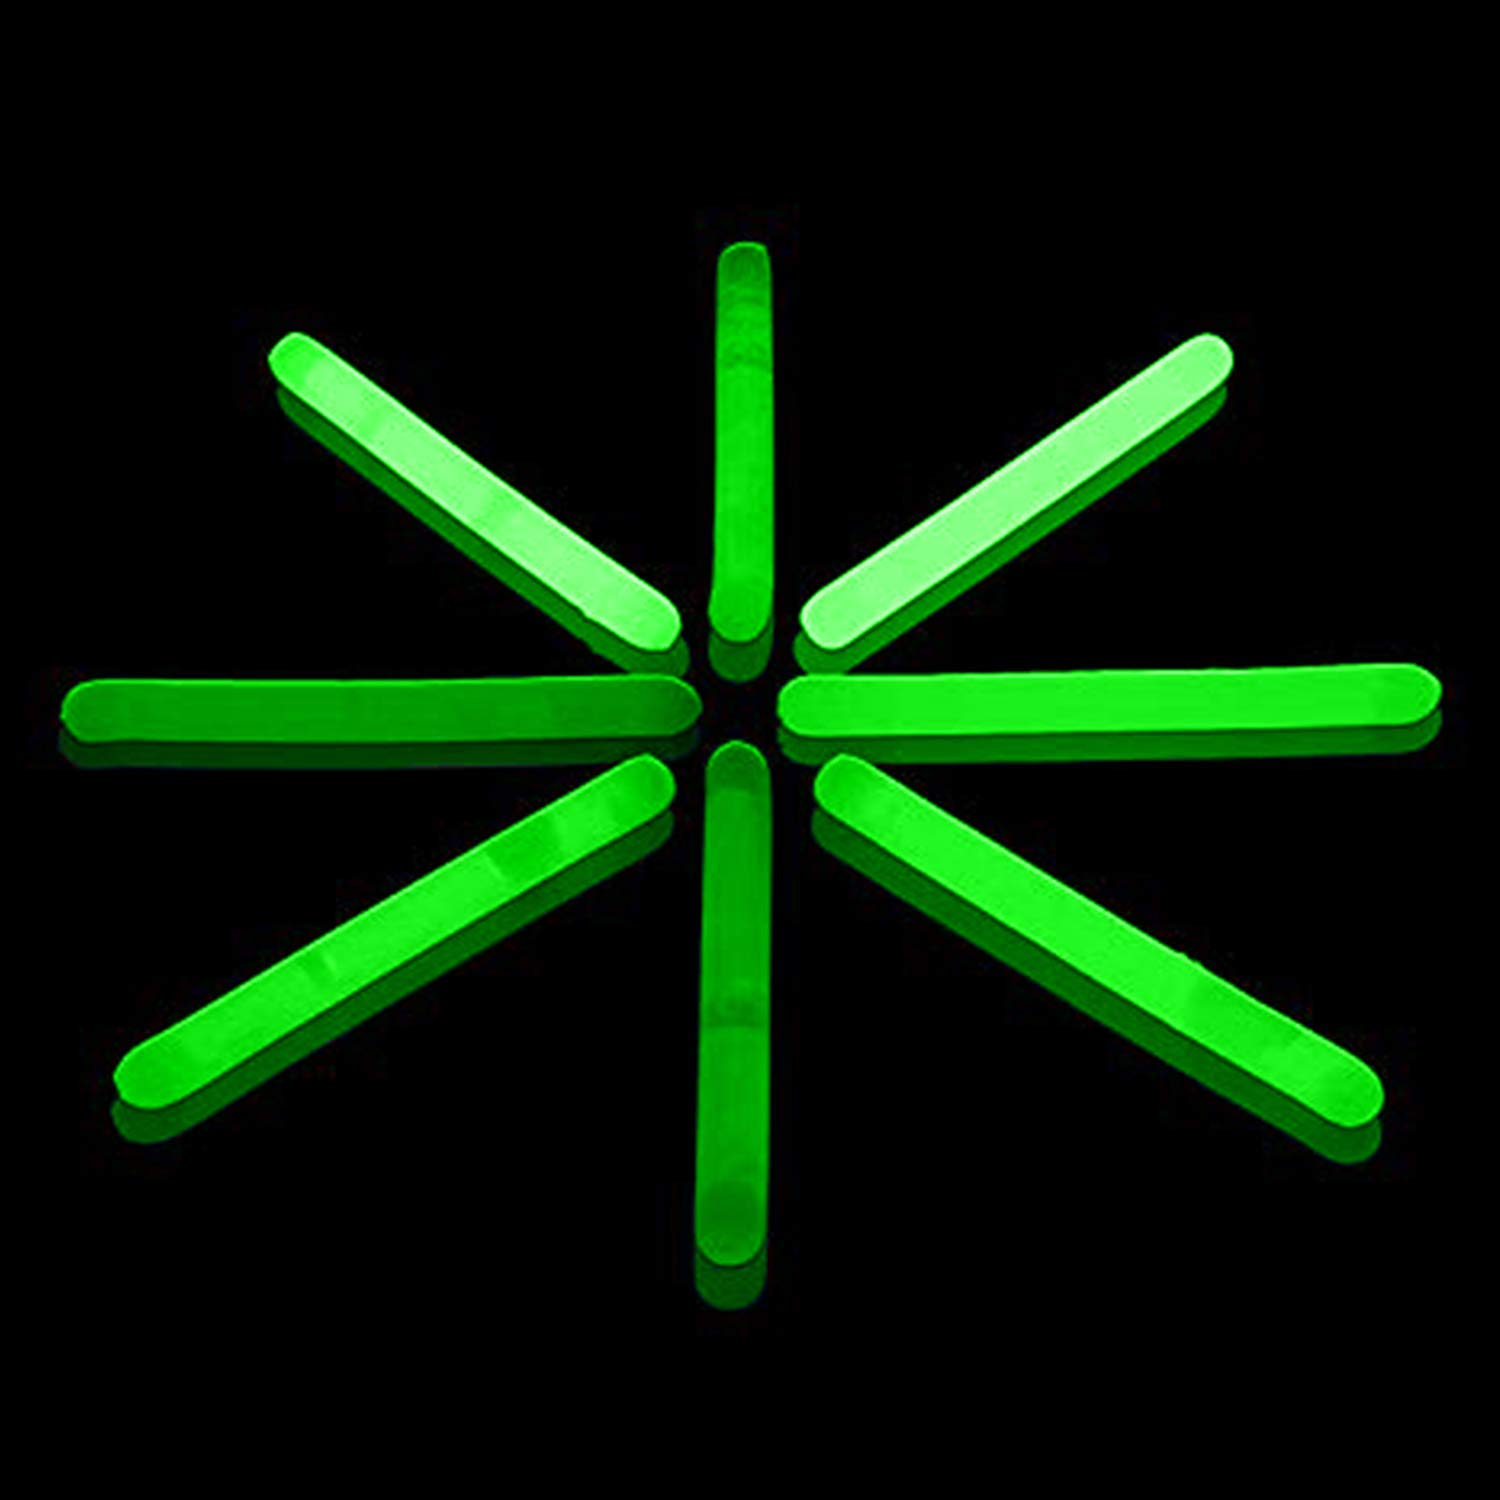 Lumistick 1.5 Inch Fishing Glow Sticks | Bright Color Snap Lights Glowsticks | Neon Mini Light for Swimming | Glow in The Dark Camping Night Party Favor Supplies (Green, 50 Glow Sticks)